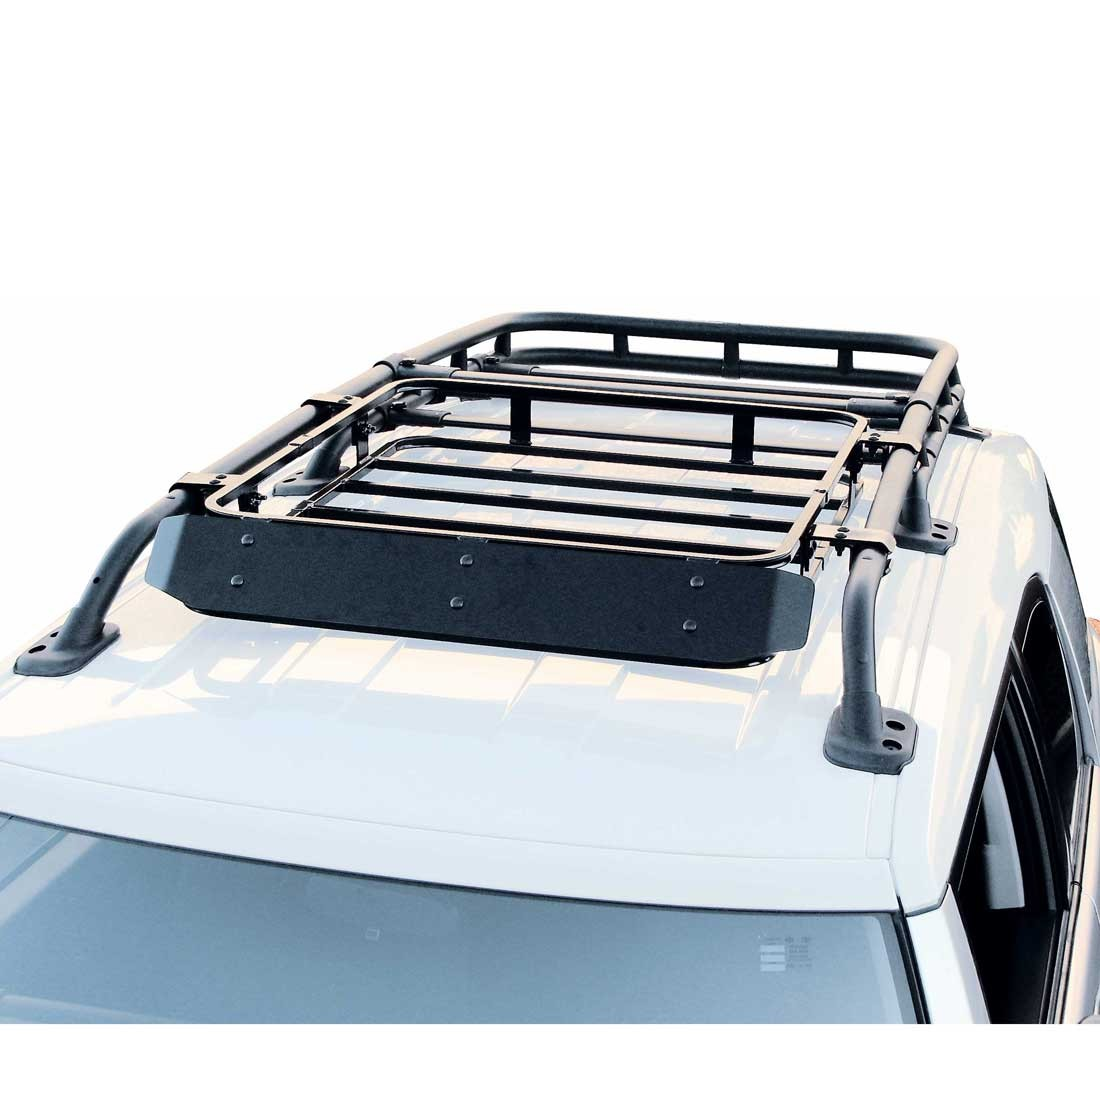 FJ Cruiser Adventure Rack